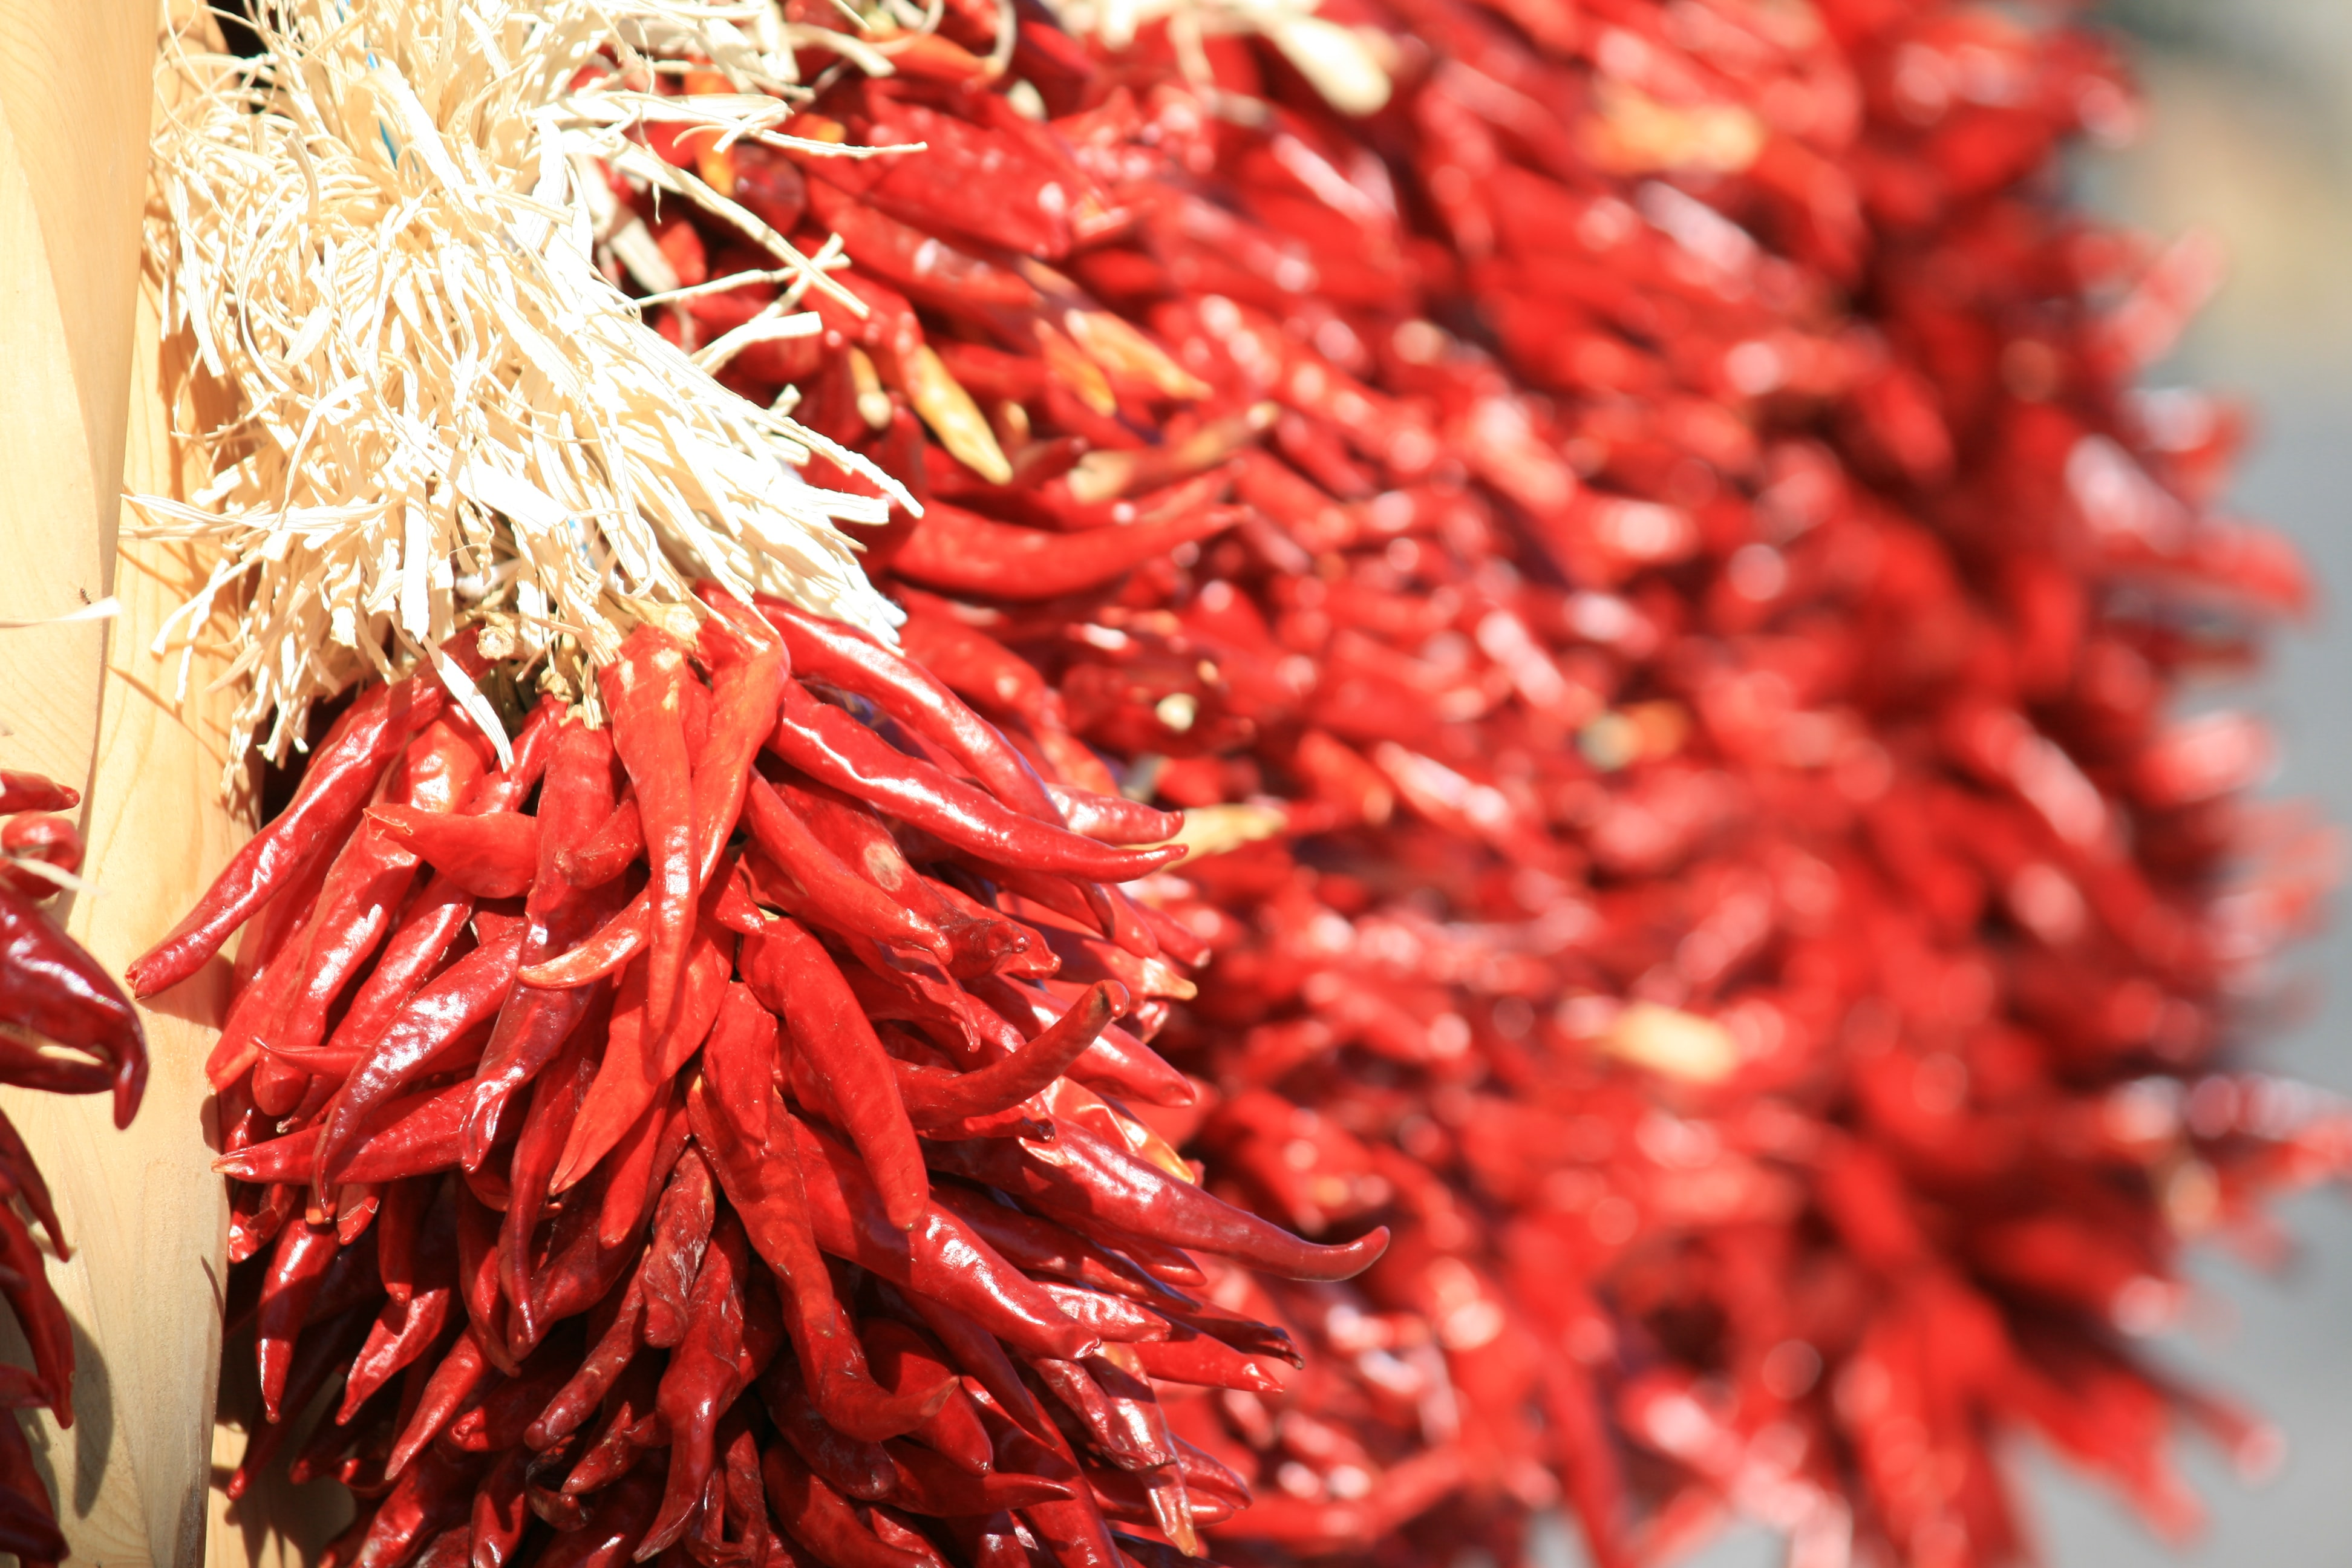 Bundles of dried red spicy chili peppers